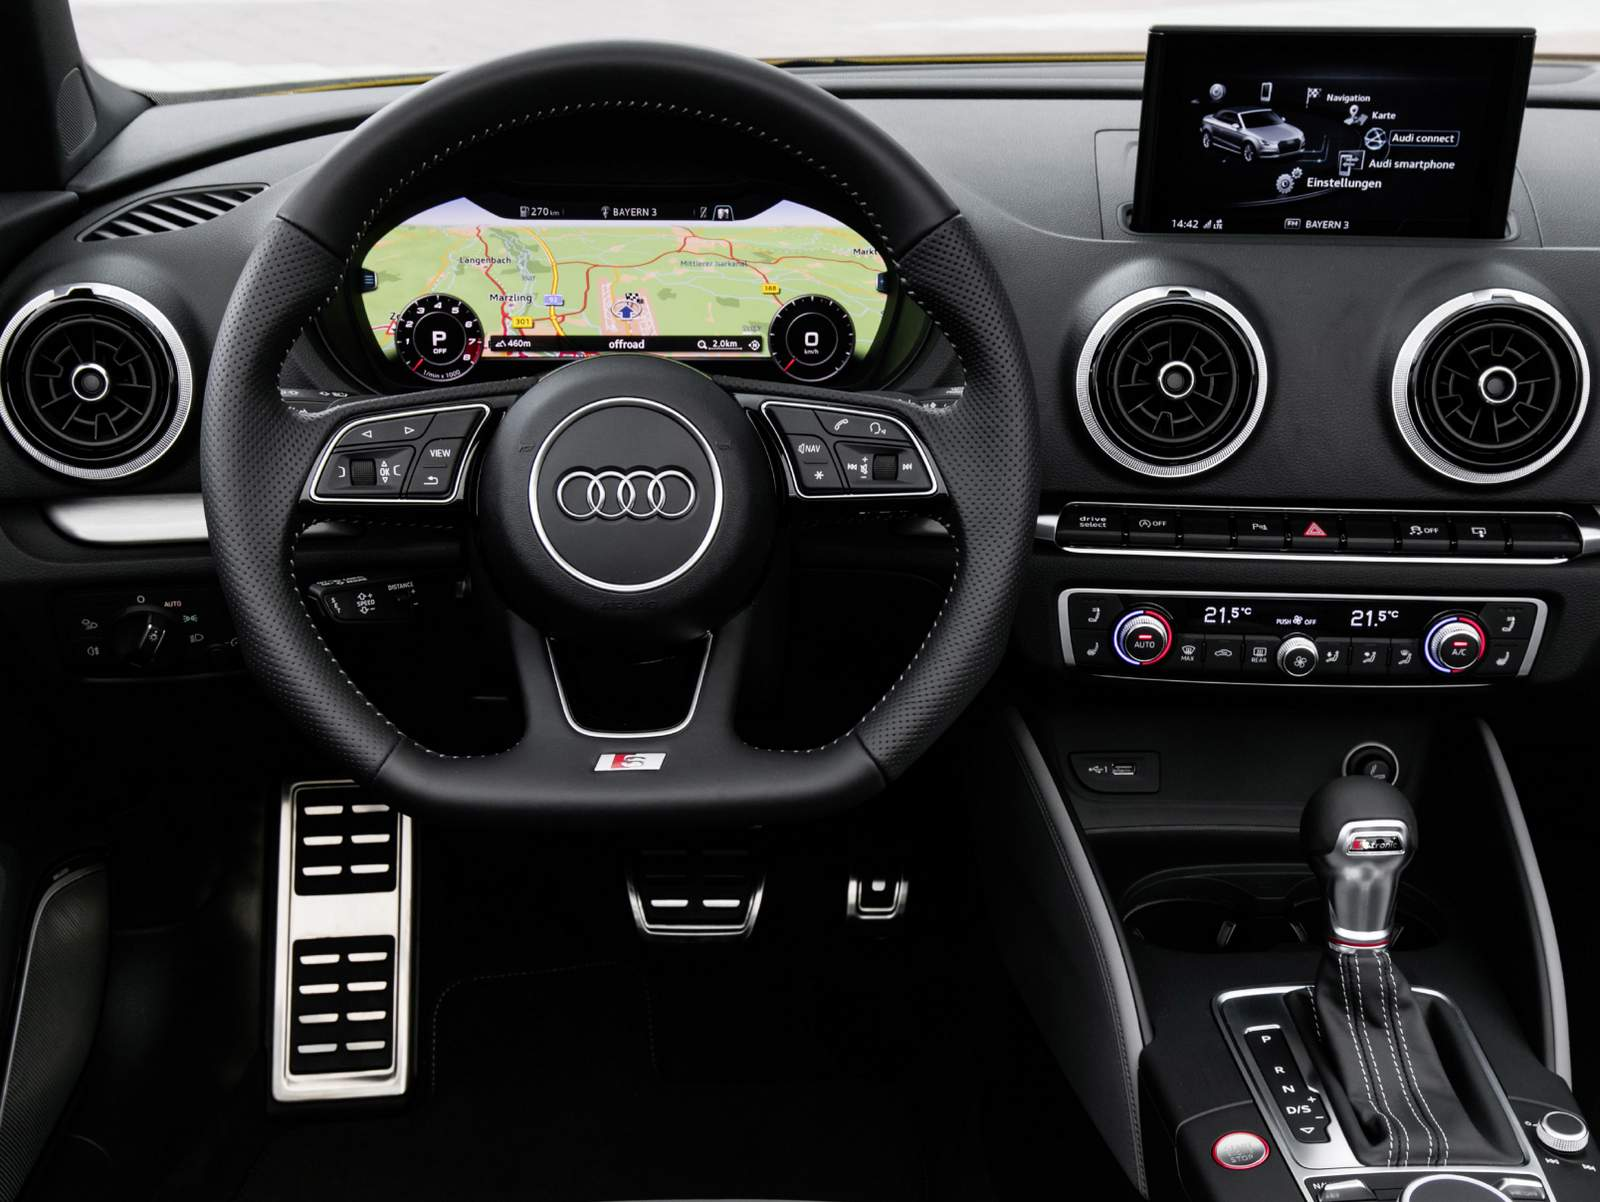 audi s3 2017 v deo consumo performance e detalhes car blog br. Black Bedroom Furniture Sets. Home Design Ideas